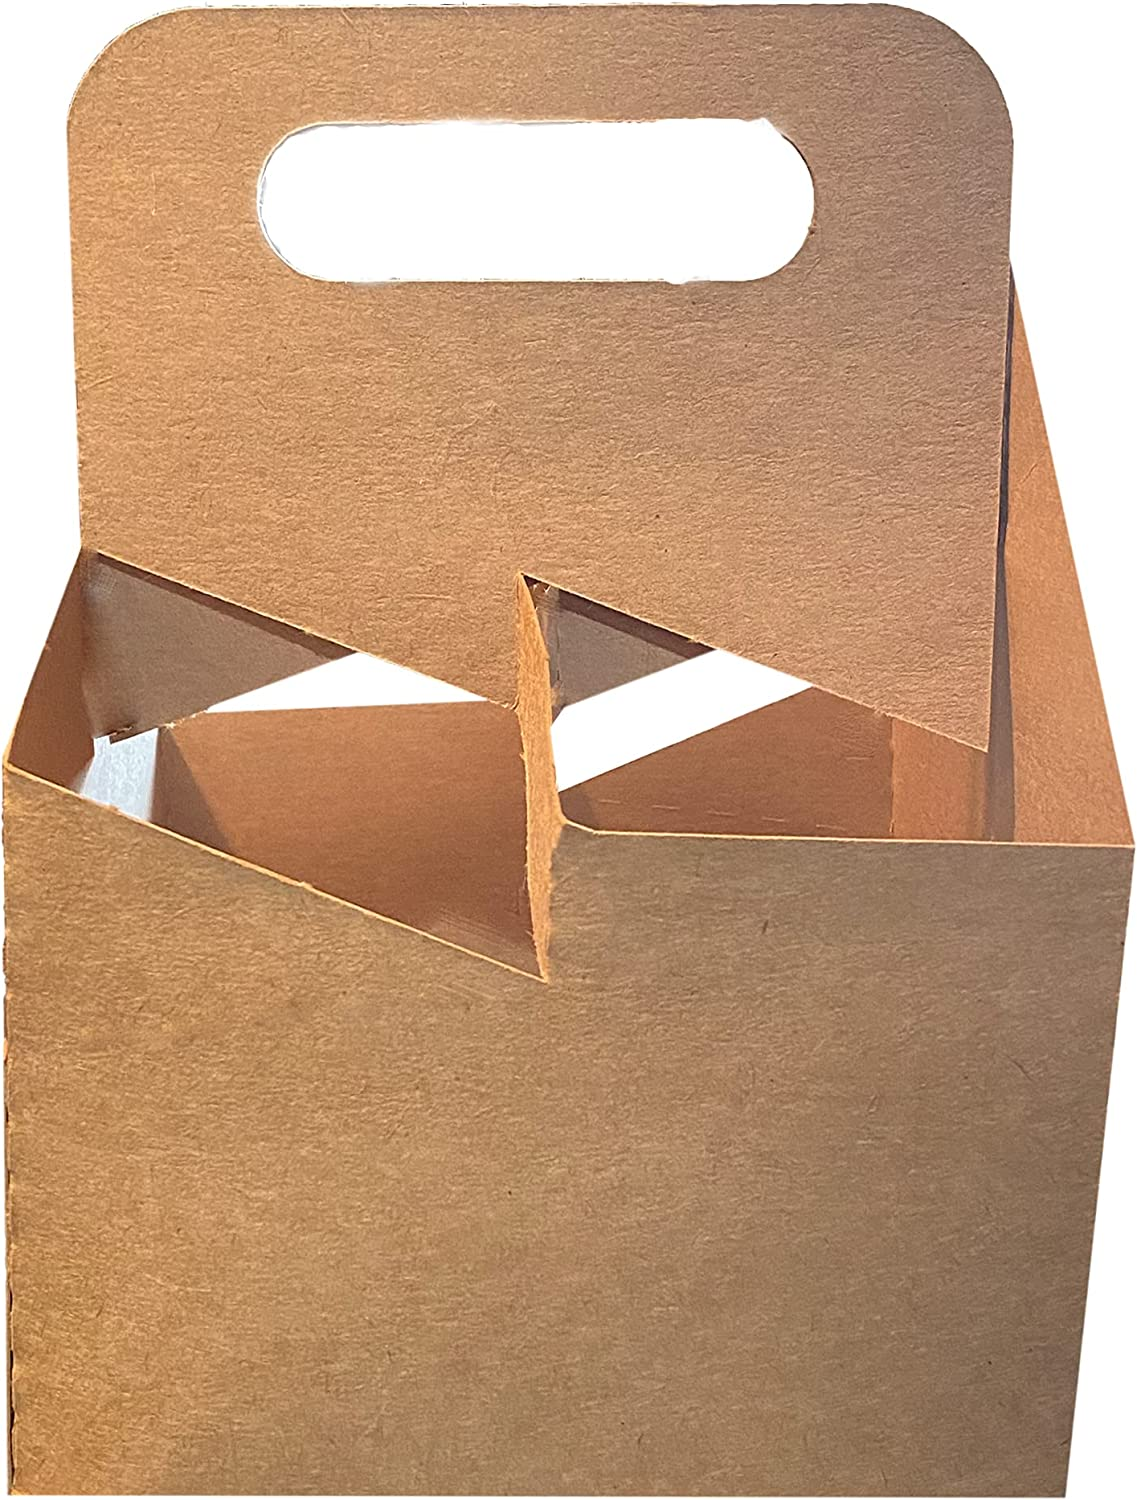 4 Cup Drink Max 72% OFF Carrier With Paperboard Handle Max 42% OFF Kraft Holder